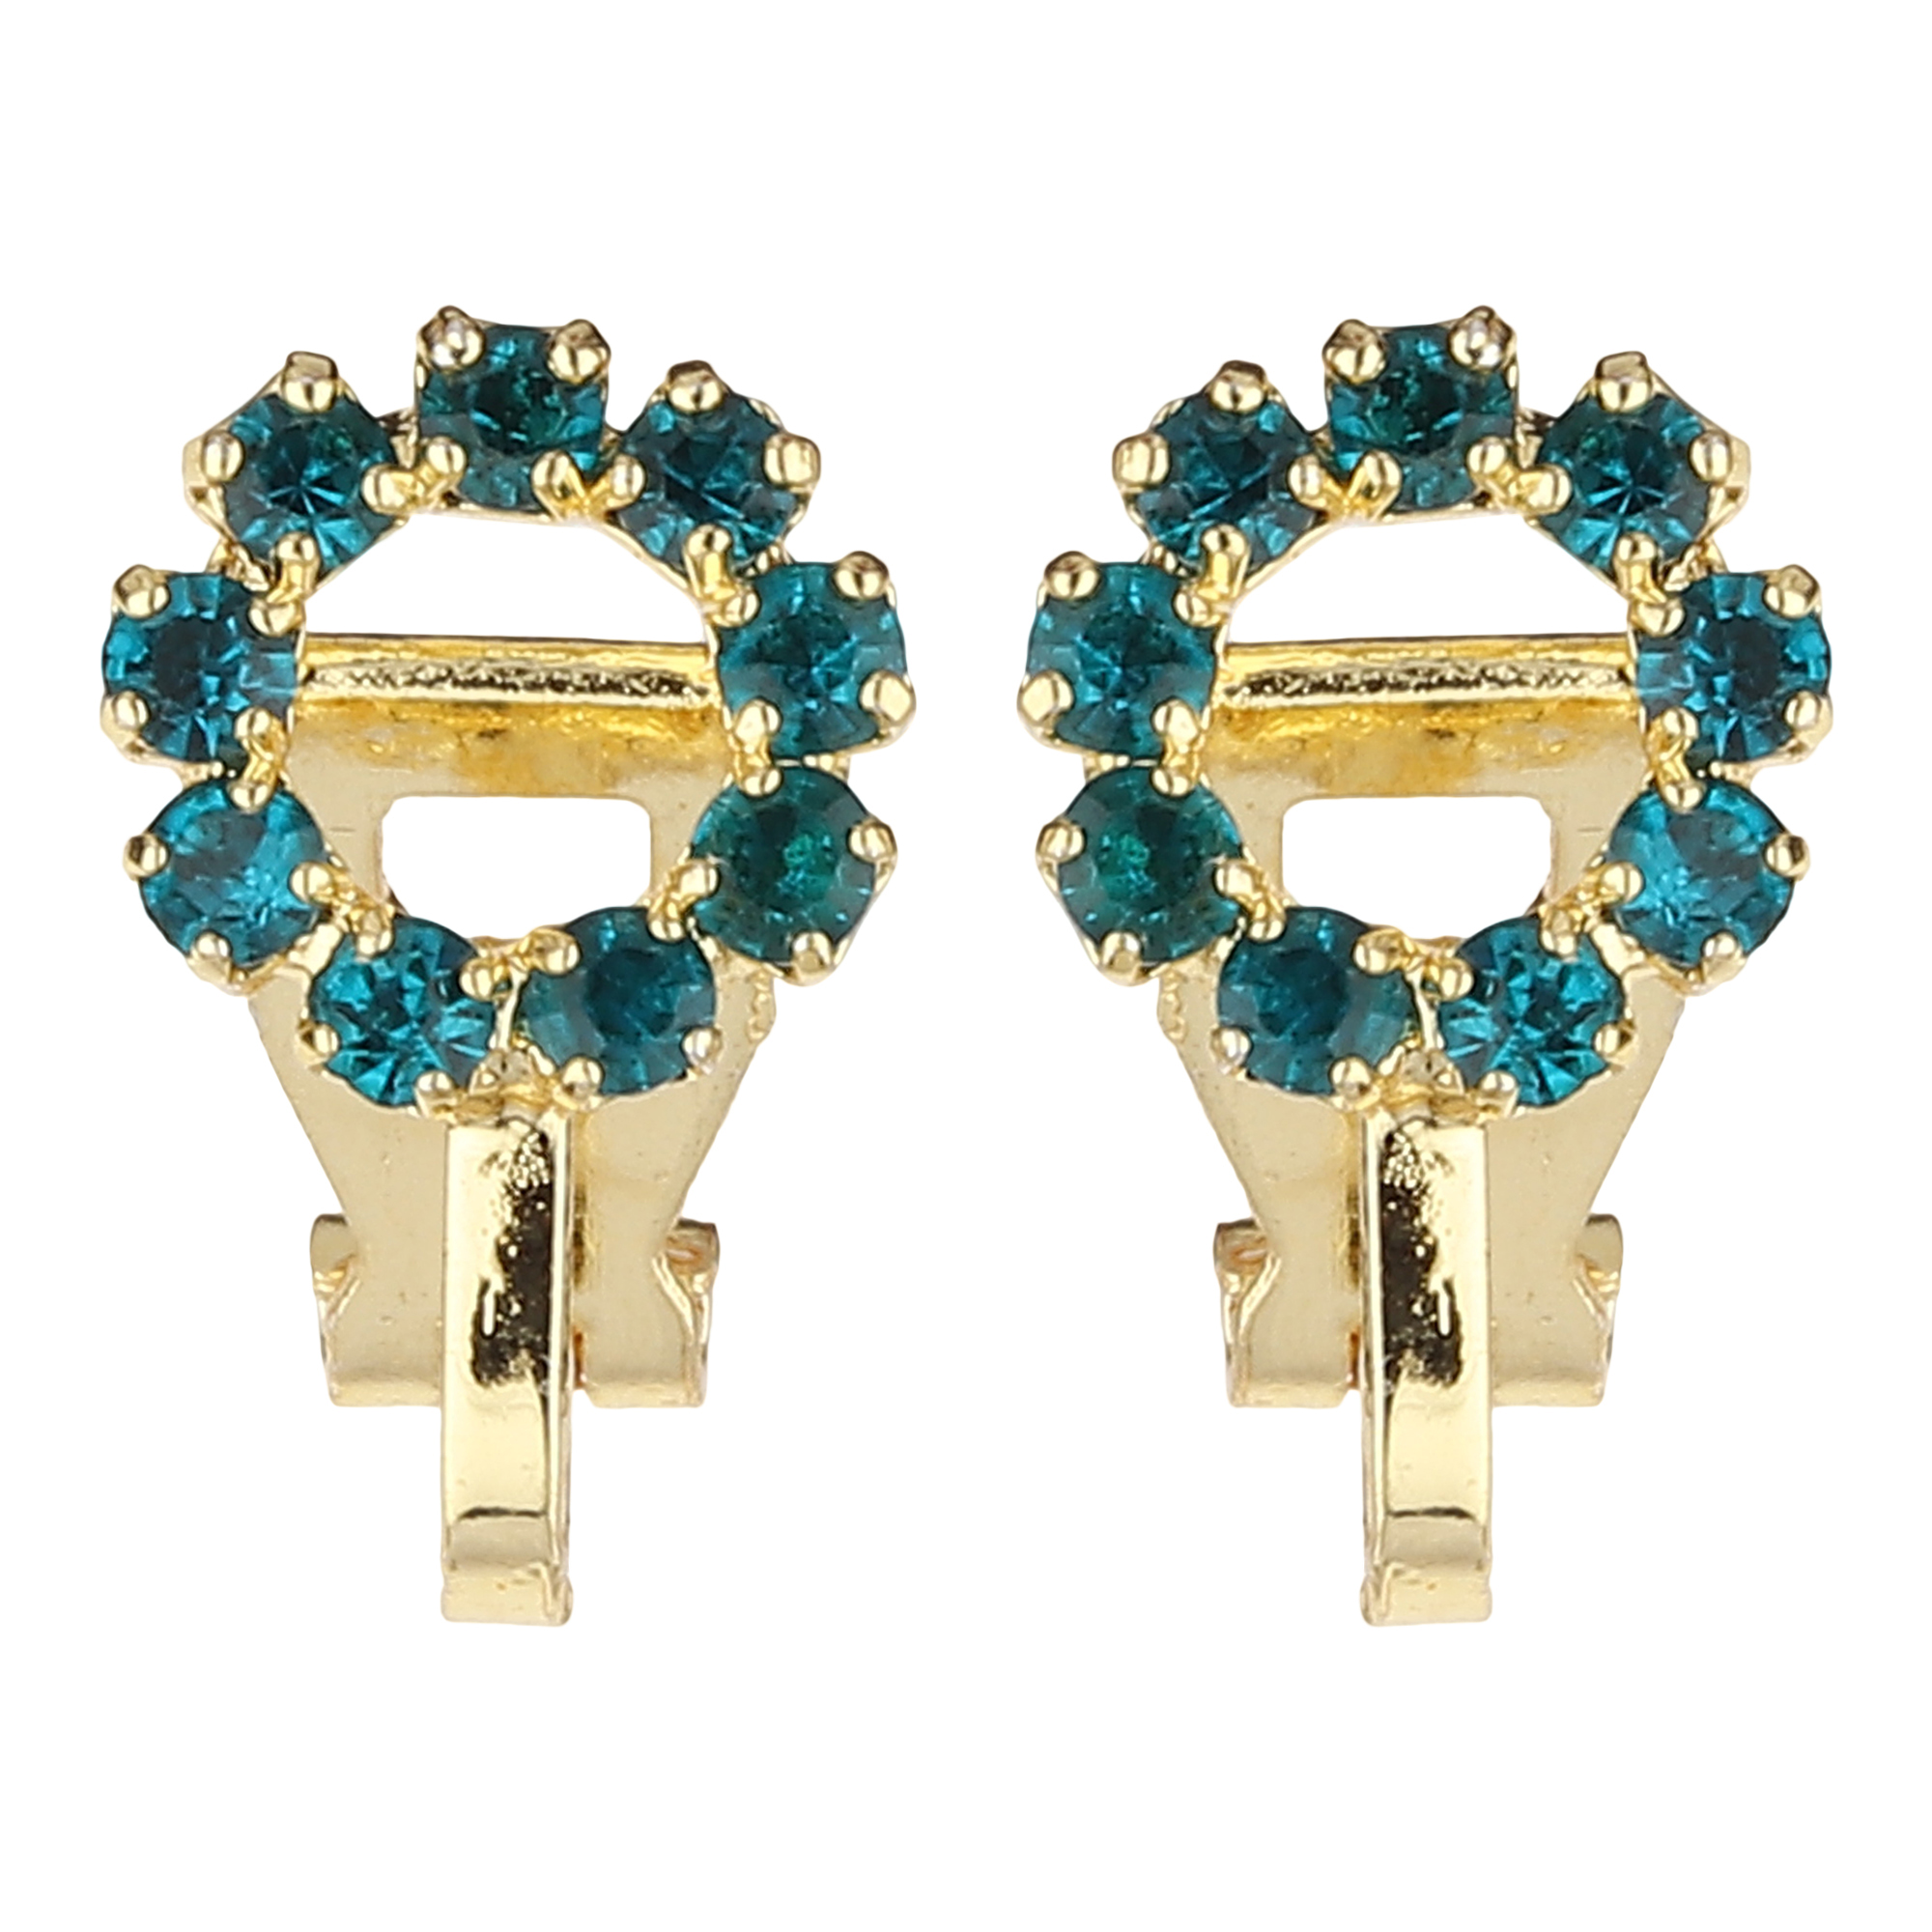 FirstBlush | FirstBlush Clip On Earrings for Non Piearced Ears for Women & Girls; Plating: Gold; Color: Aqua (Blue); Size: 10 X 10mm; Wt.: 3gm. (MIEC104M123)